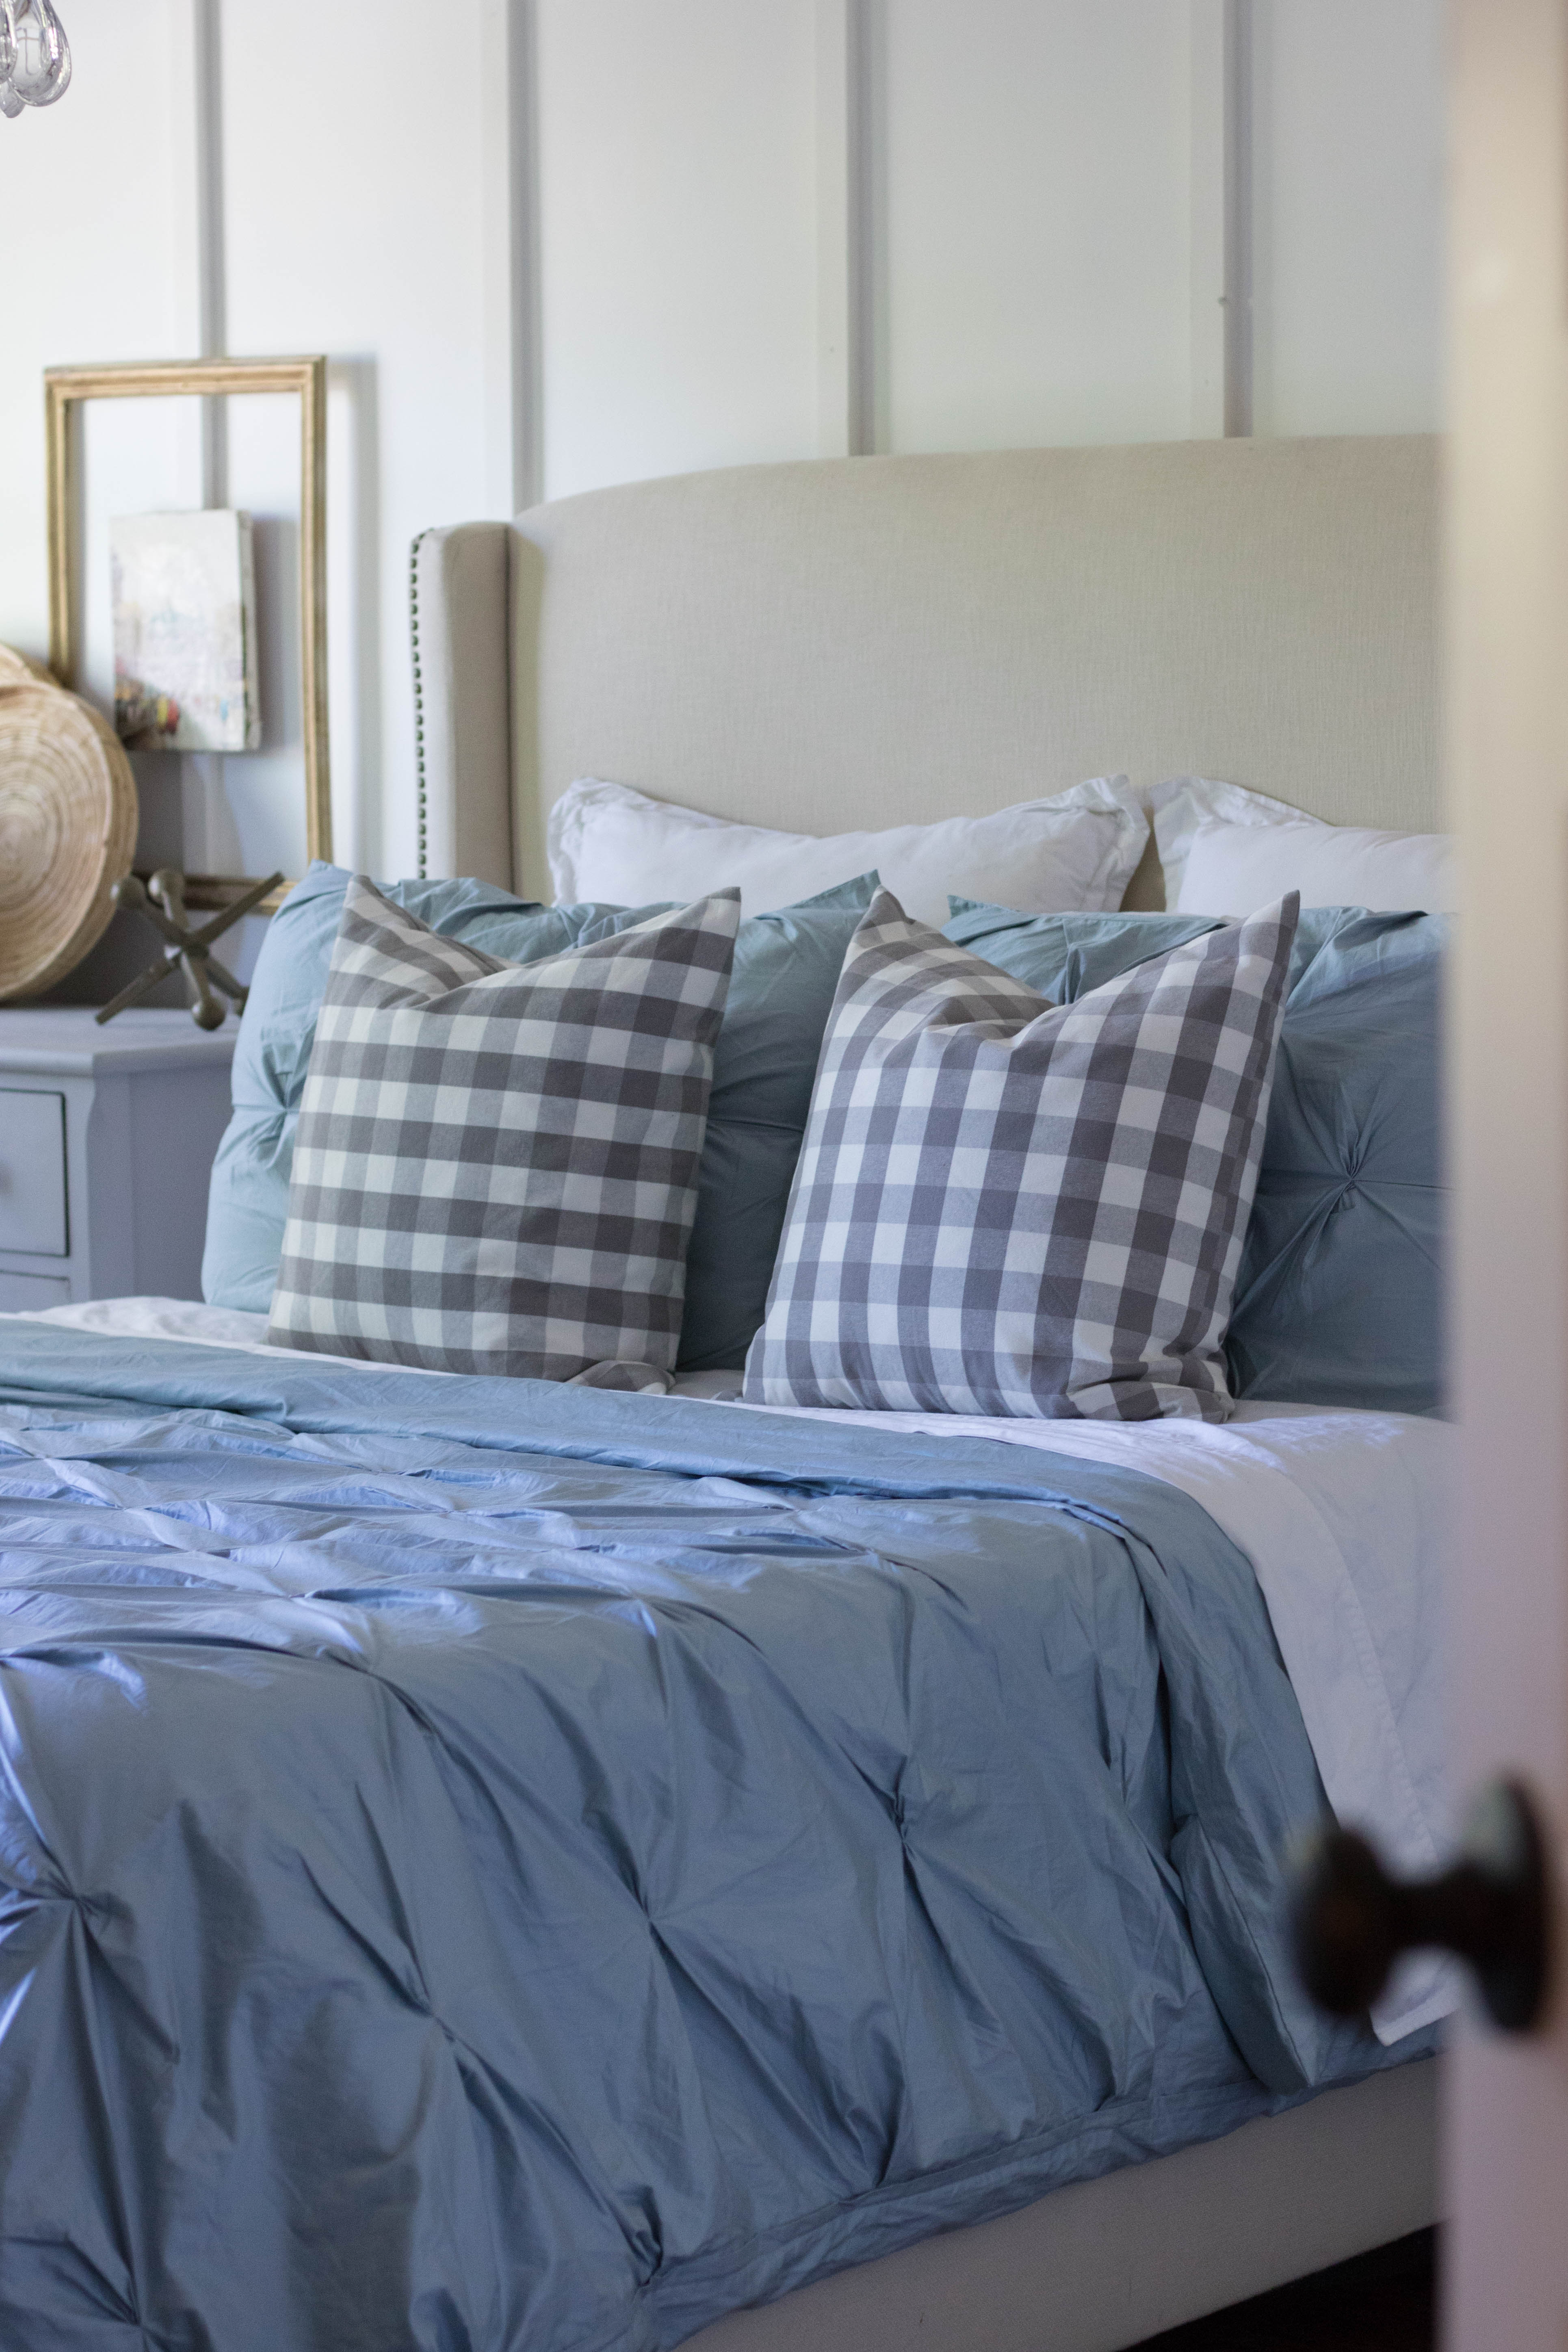 Alright My Friends Come On In To The Reveal Of Our French Farmhouse Master Bedroom